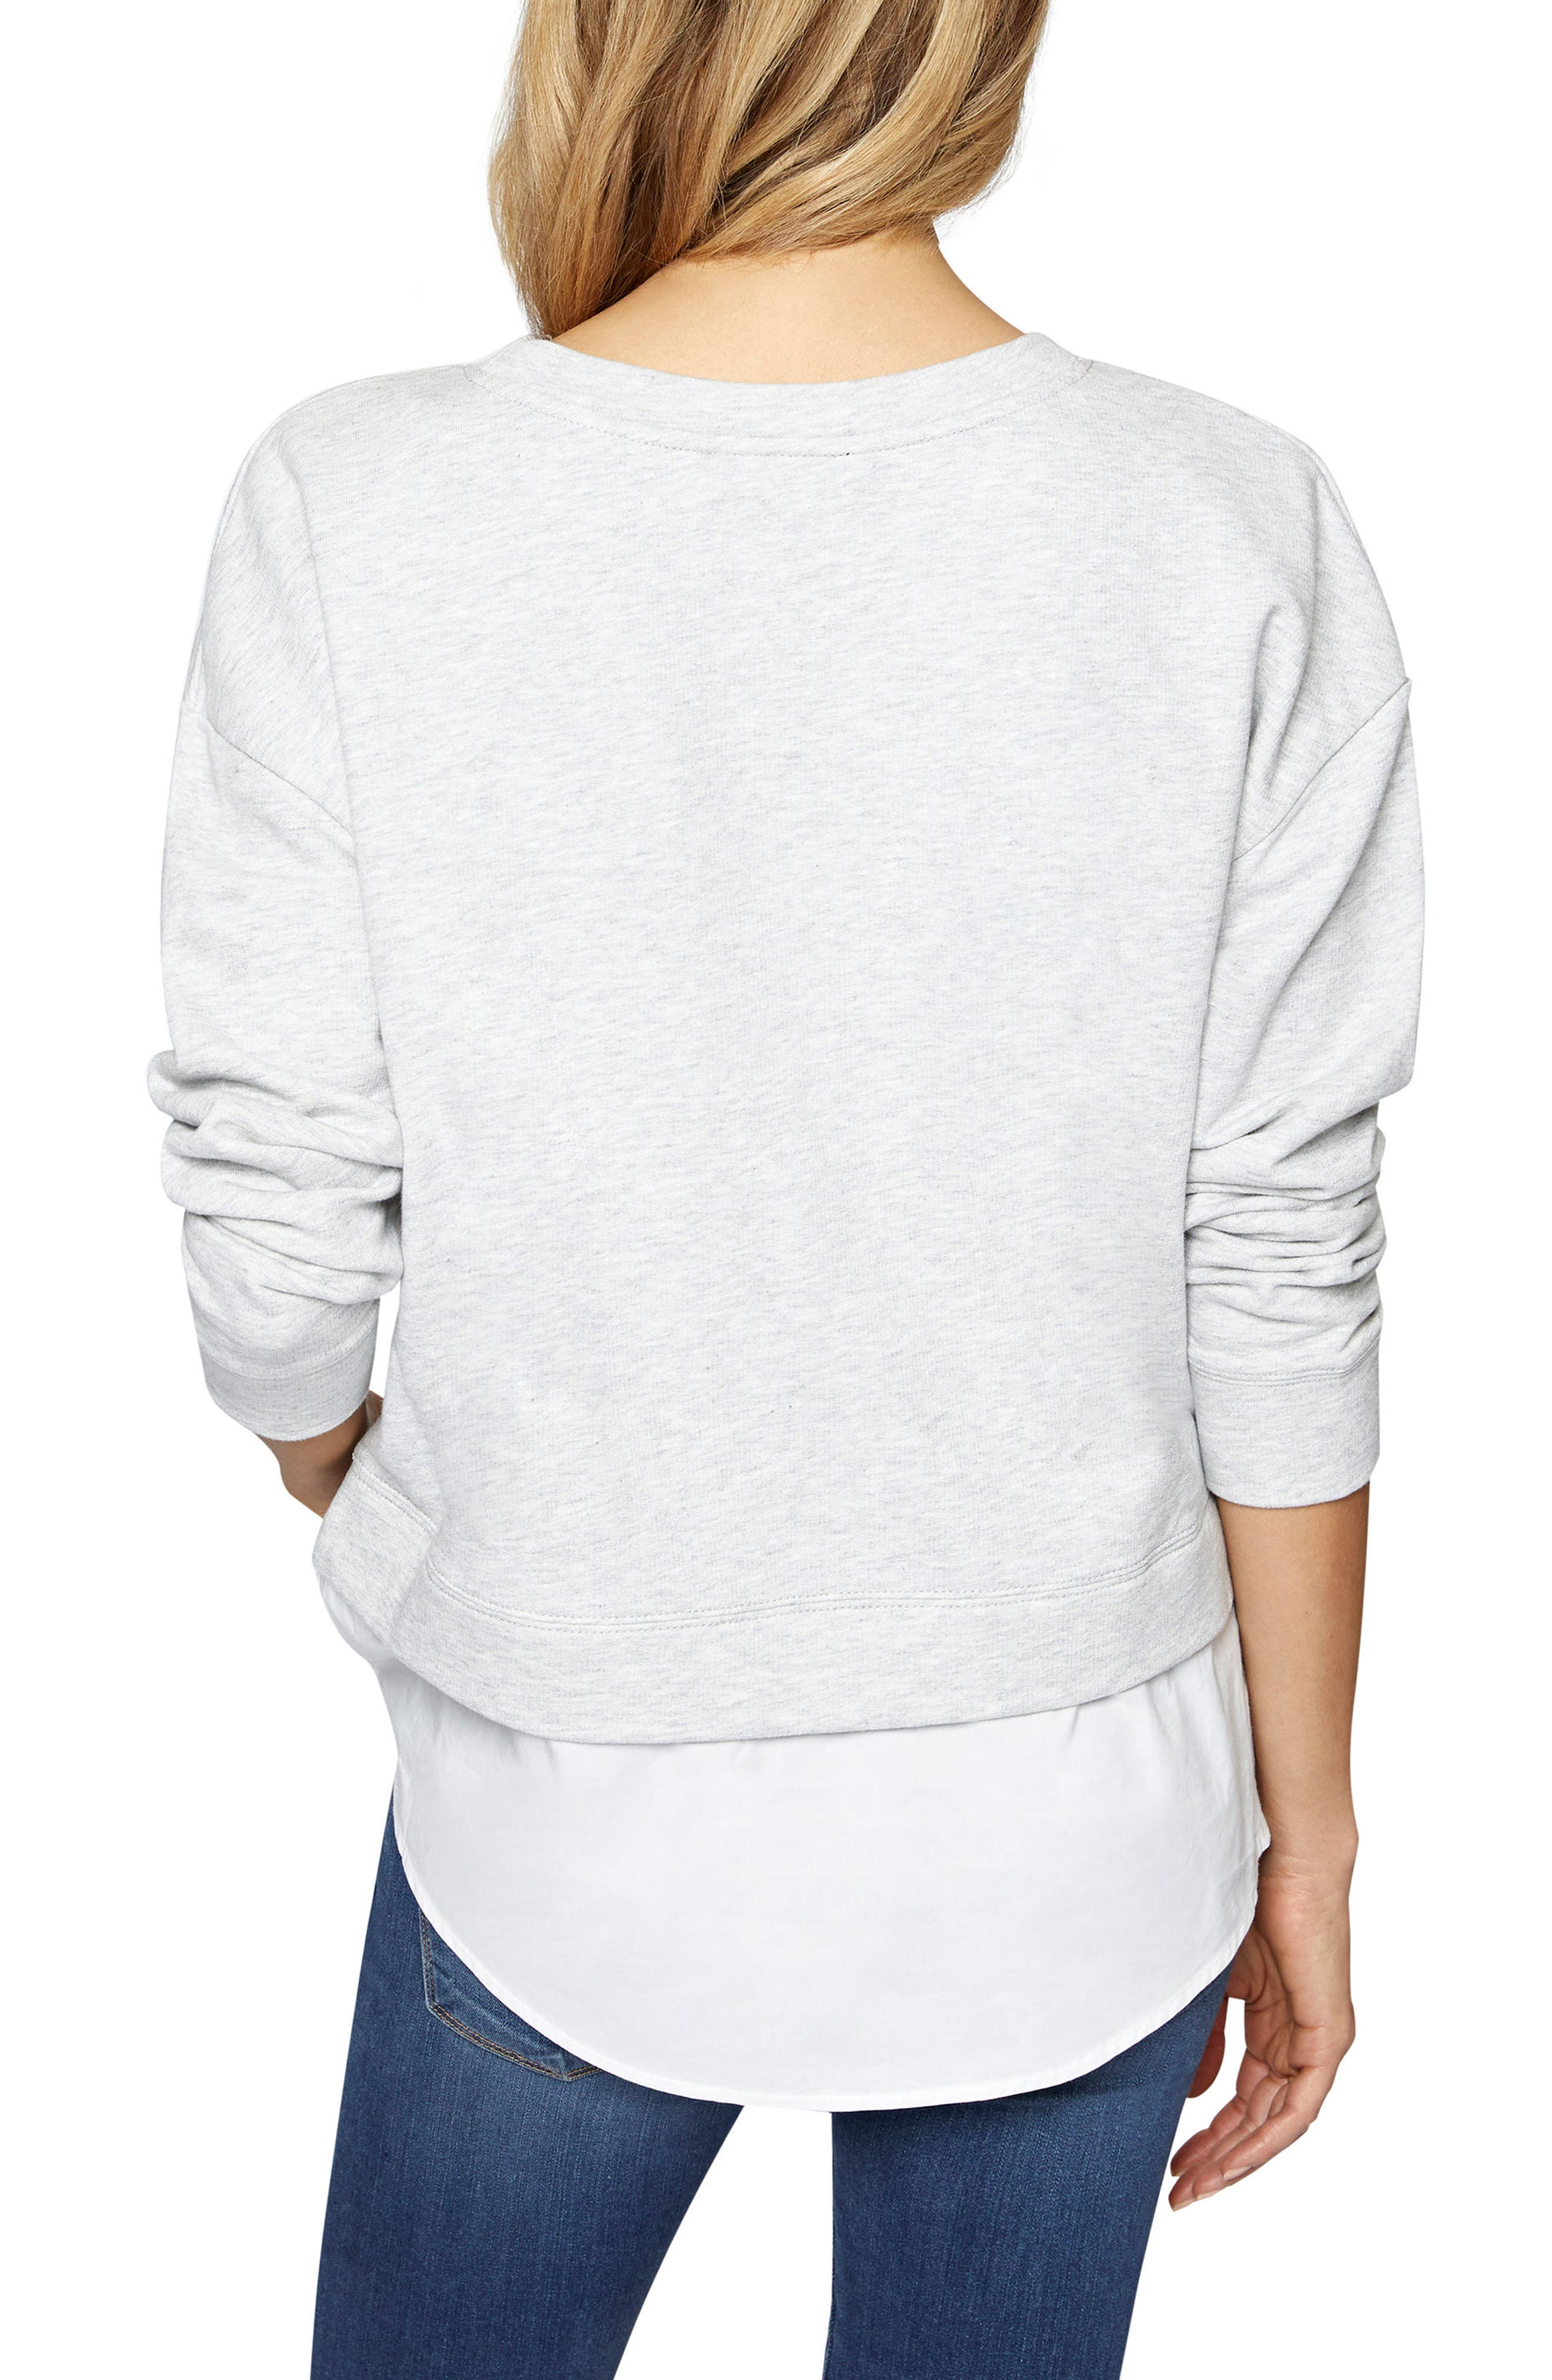 Ally Layered Look Sweatshirt,                             Alternate thumbnail 2, color,                             064